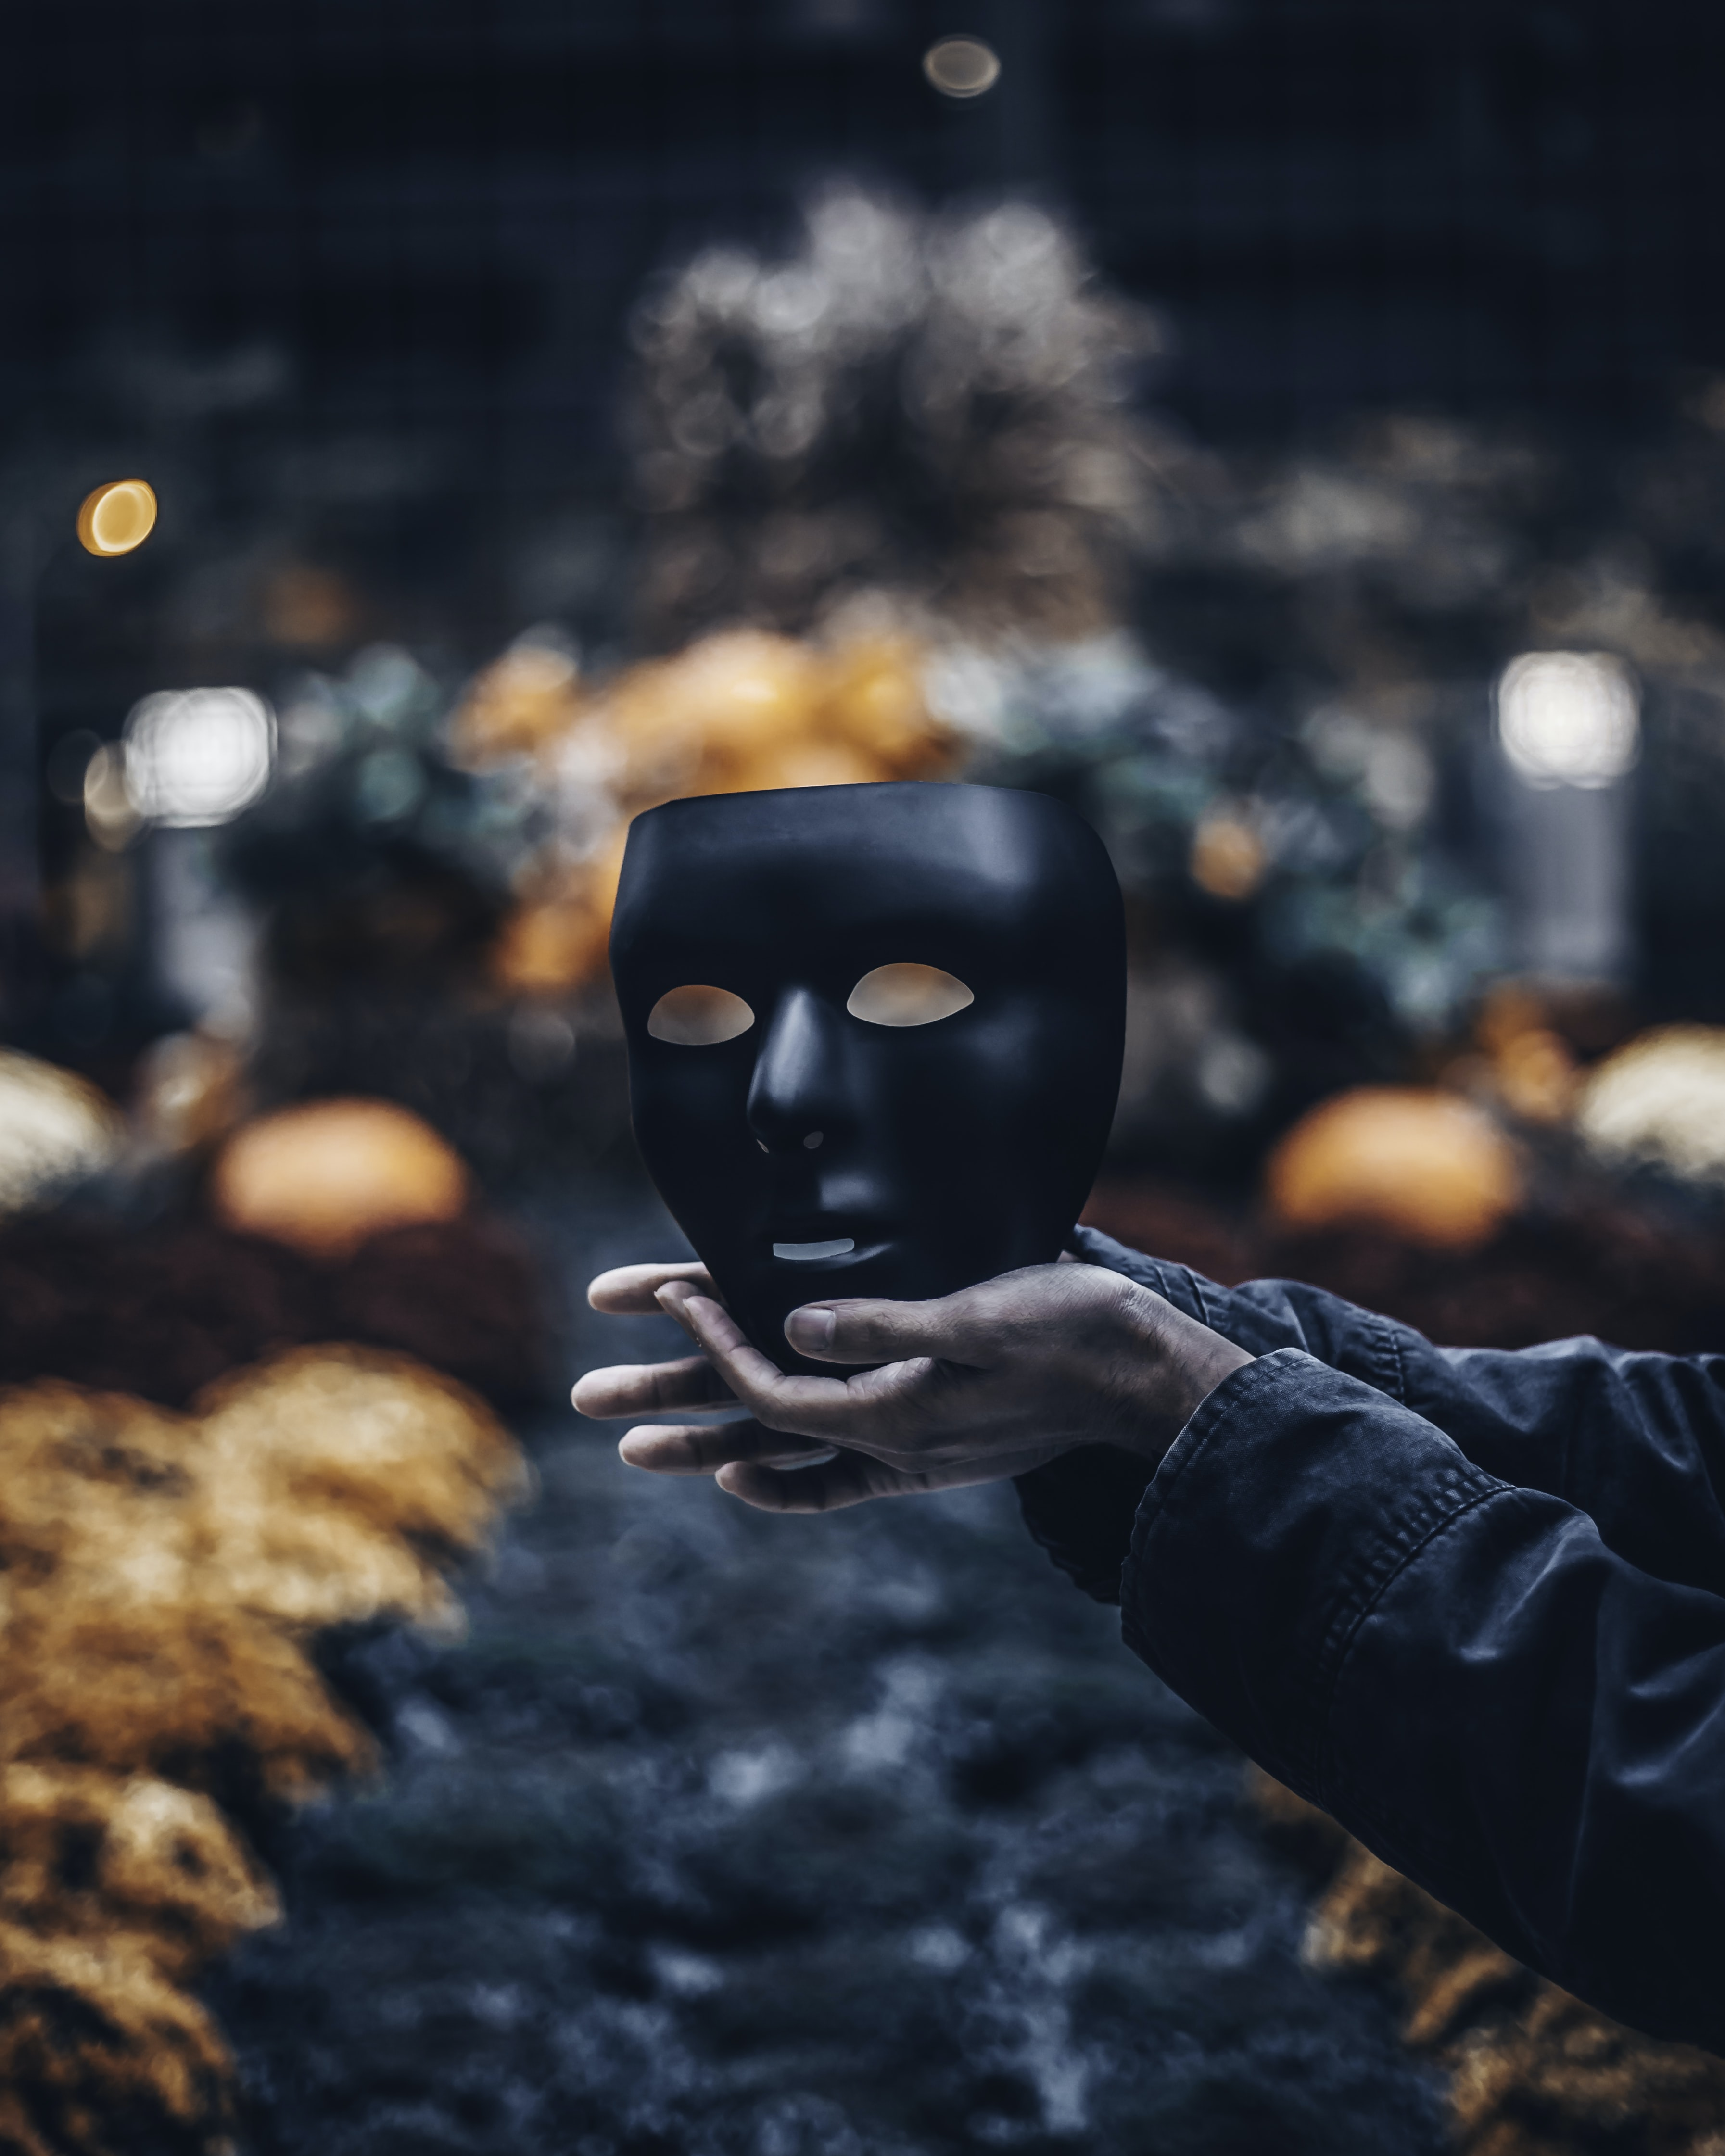 Behind my mask lonely stories